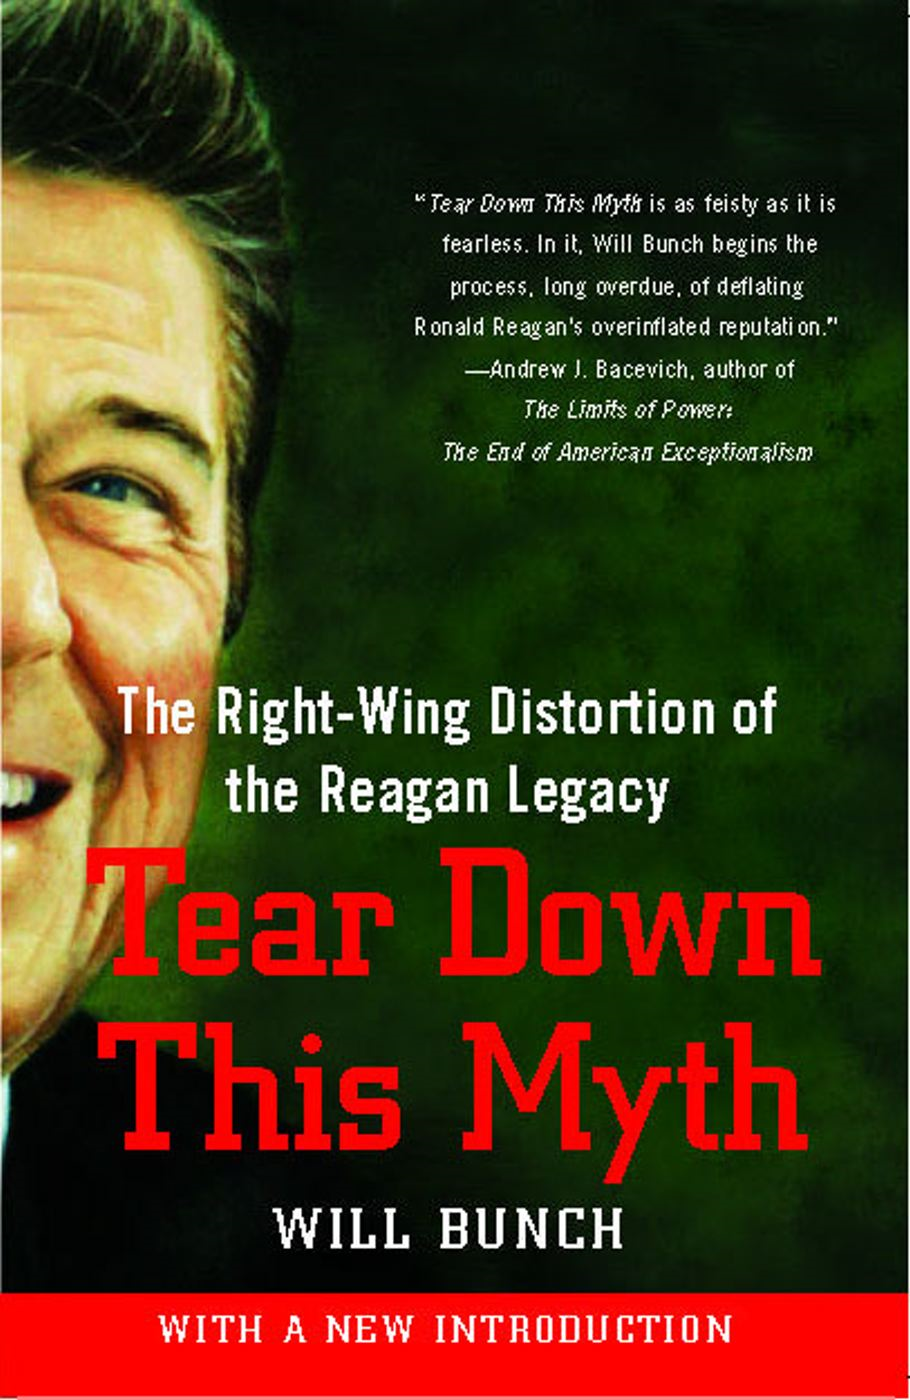 Tear Down This Myth By: Will Bunch